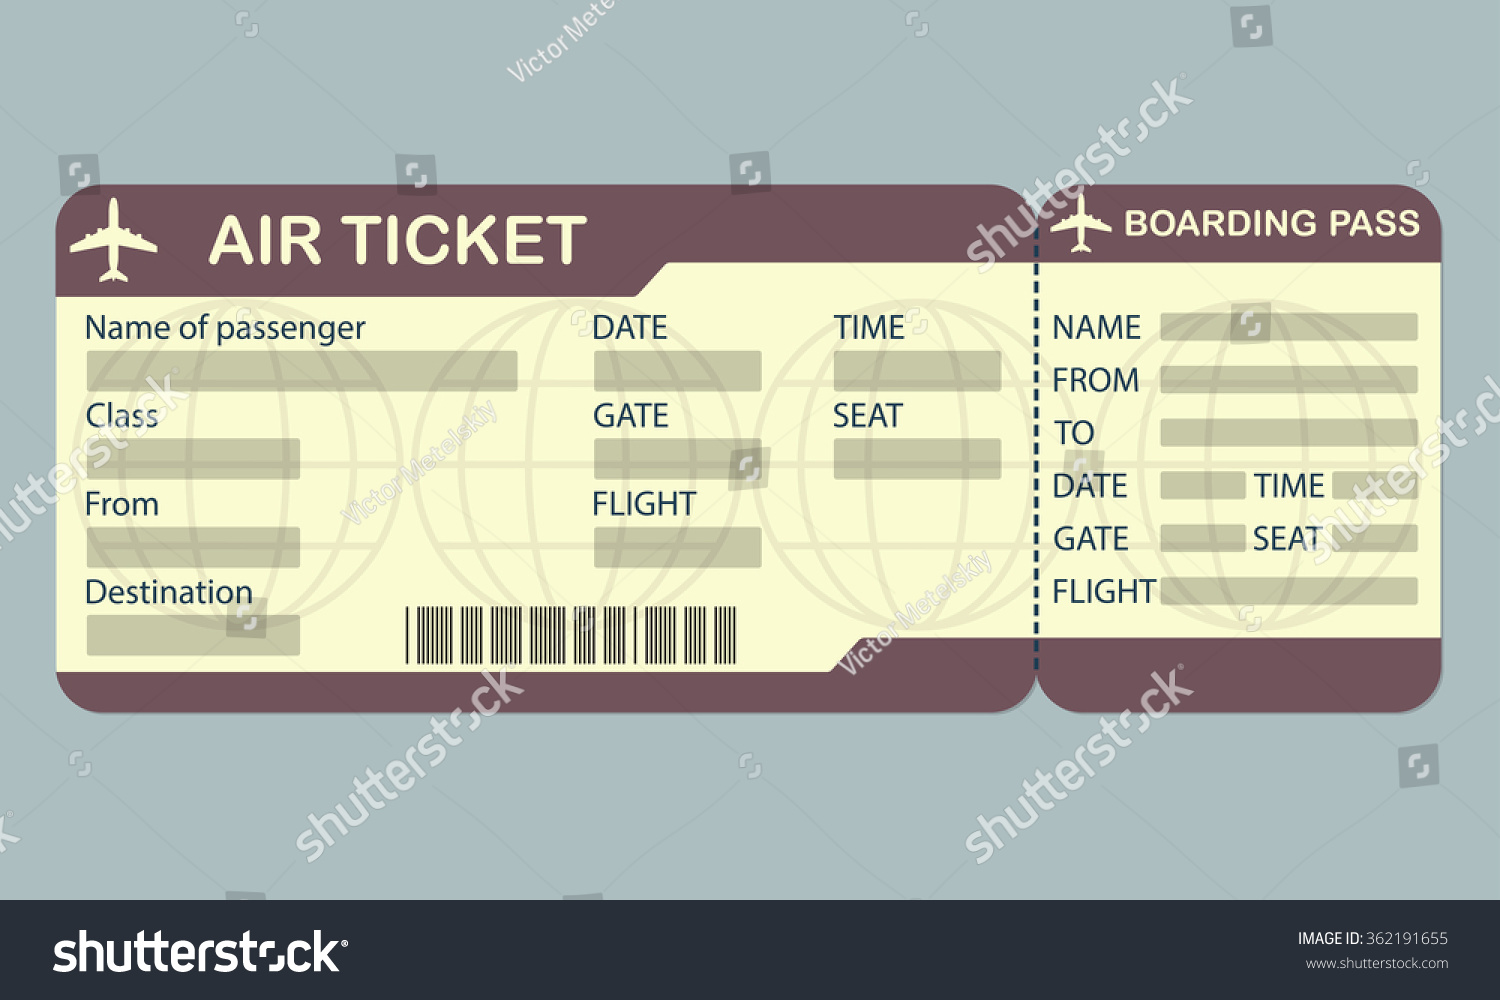 Airline Boarding Pass Ticket Template Detailed Illustration – Plane Ticket Template